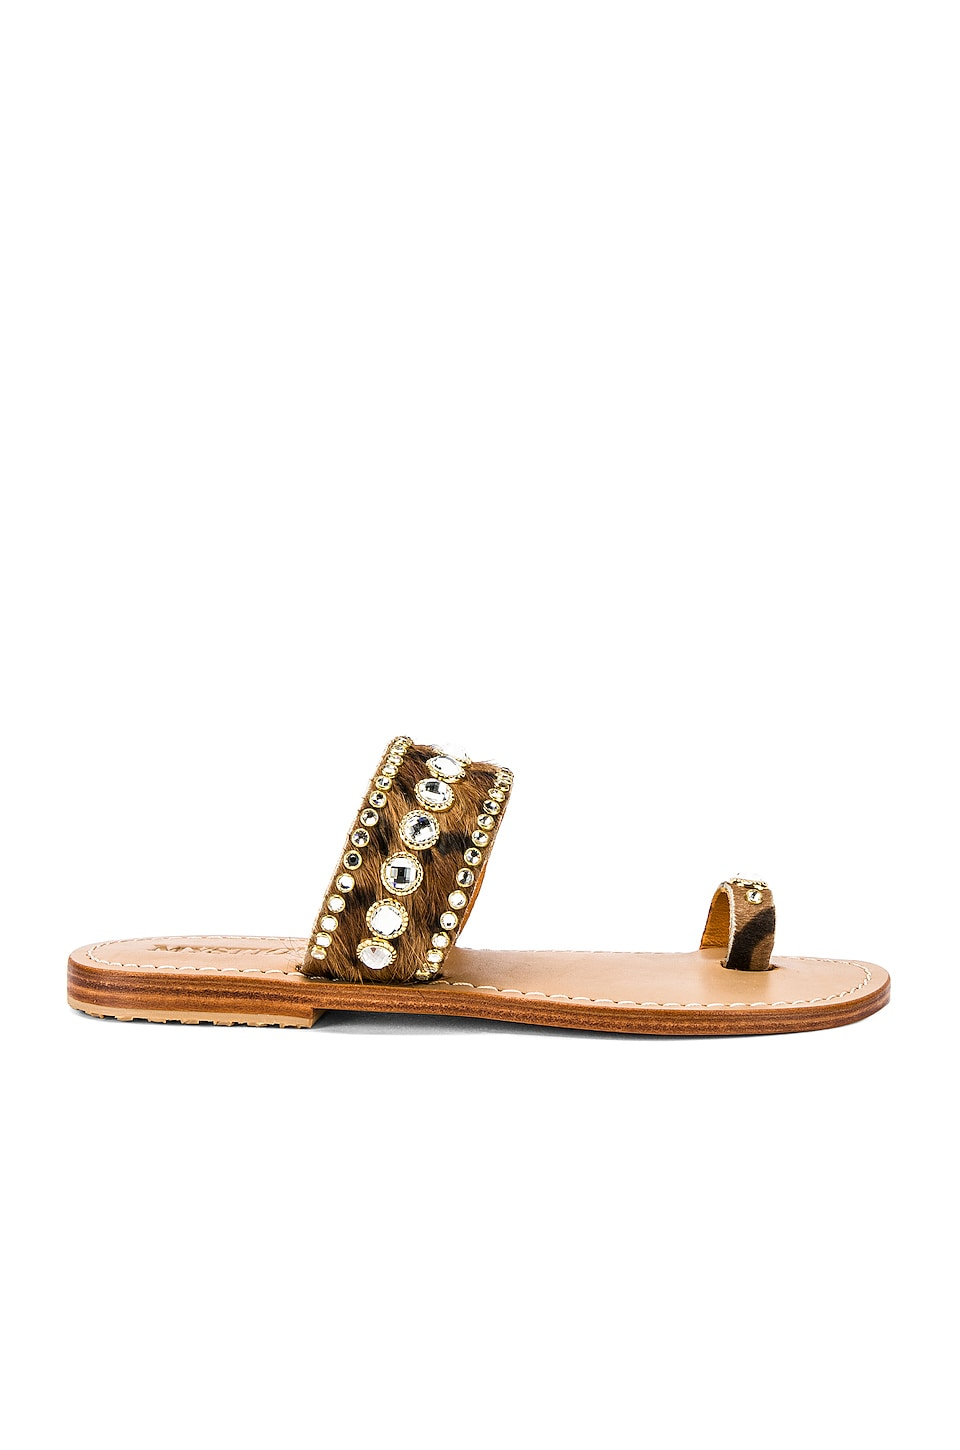 Mystique Leopard Sandal in Brown